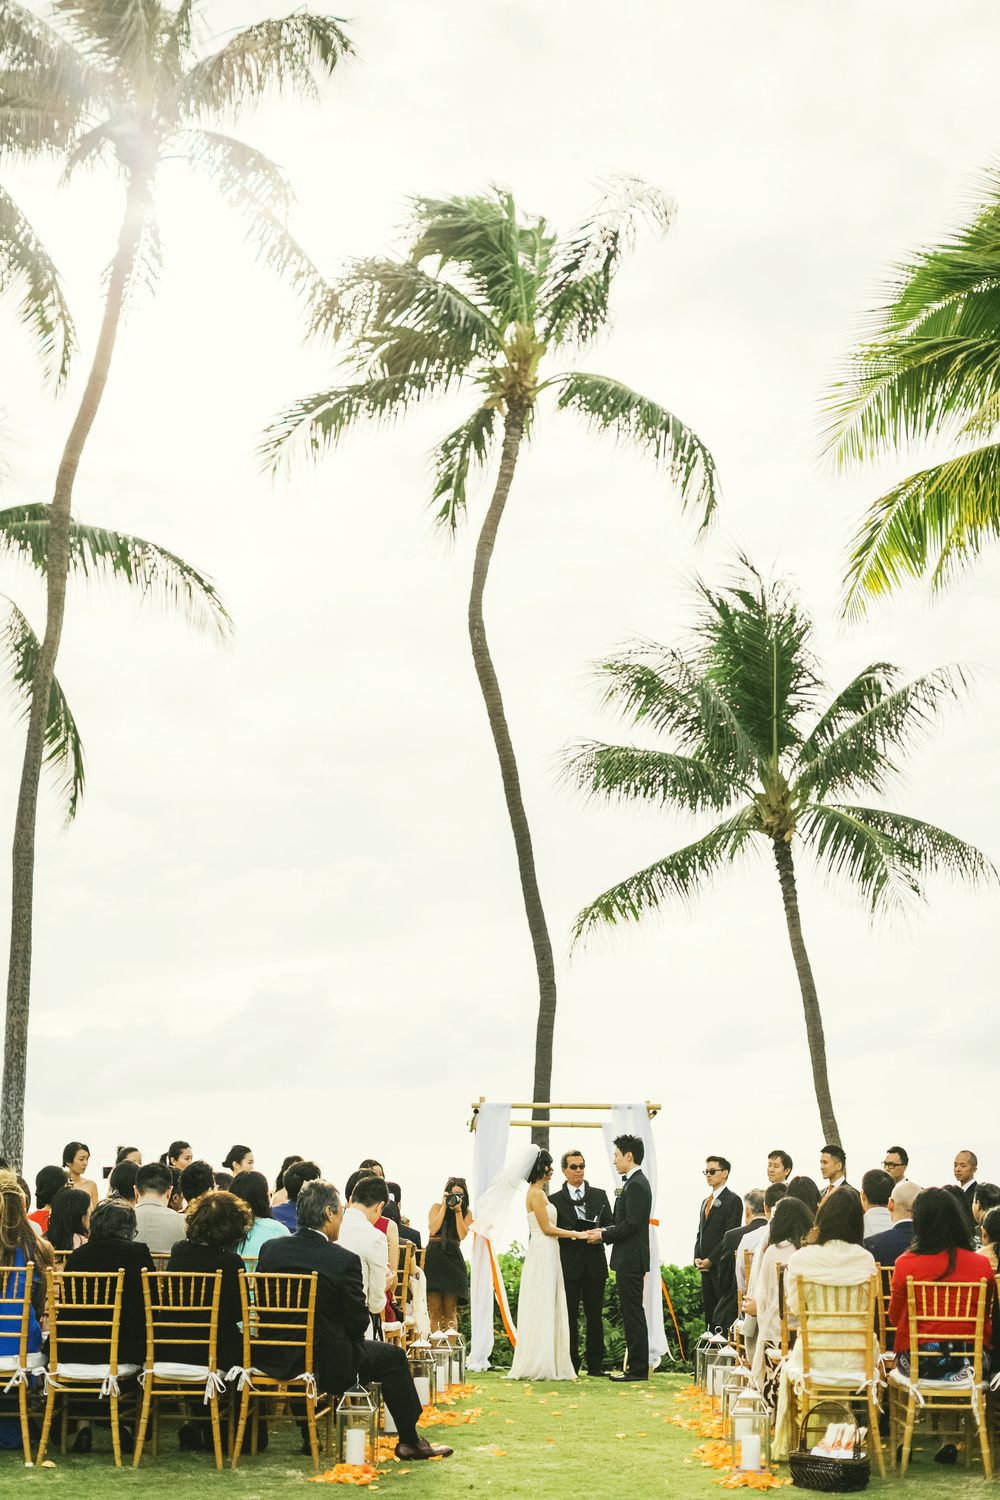 angie-diaz-photography-oahu-wedding-lanikuhonoa-shenshen-marshall-32.jpg